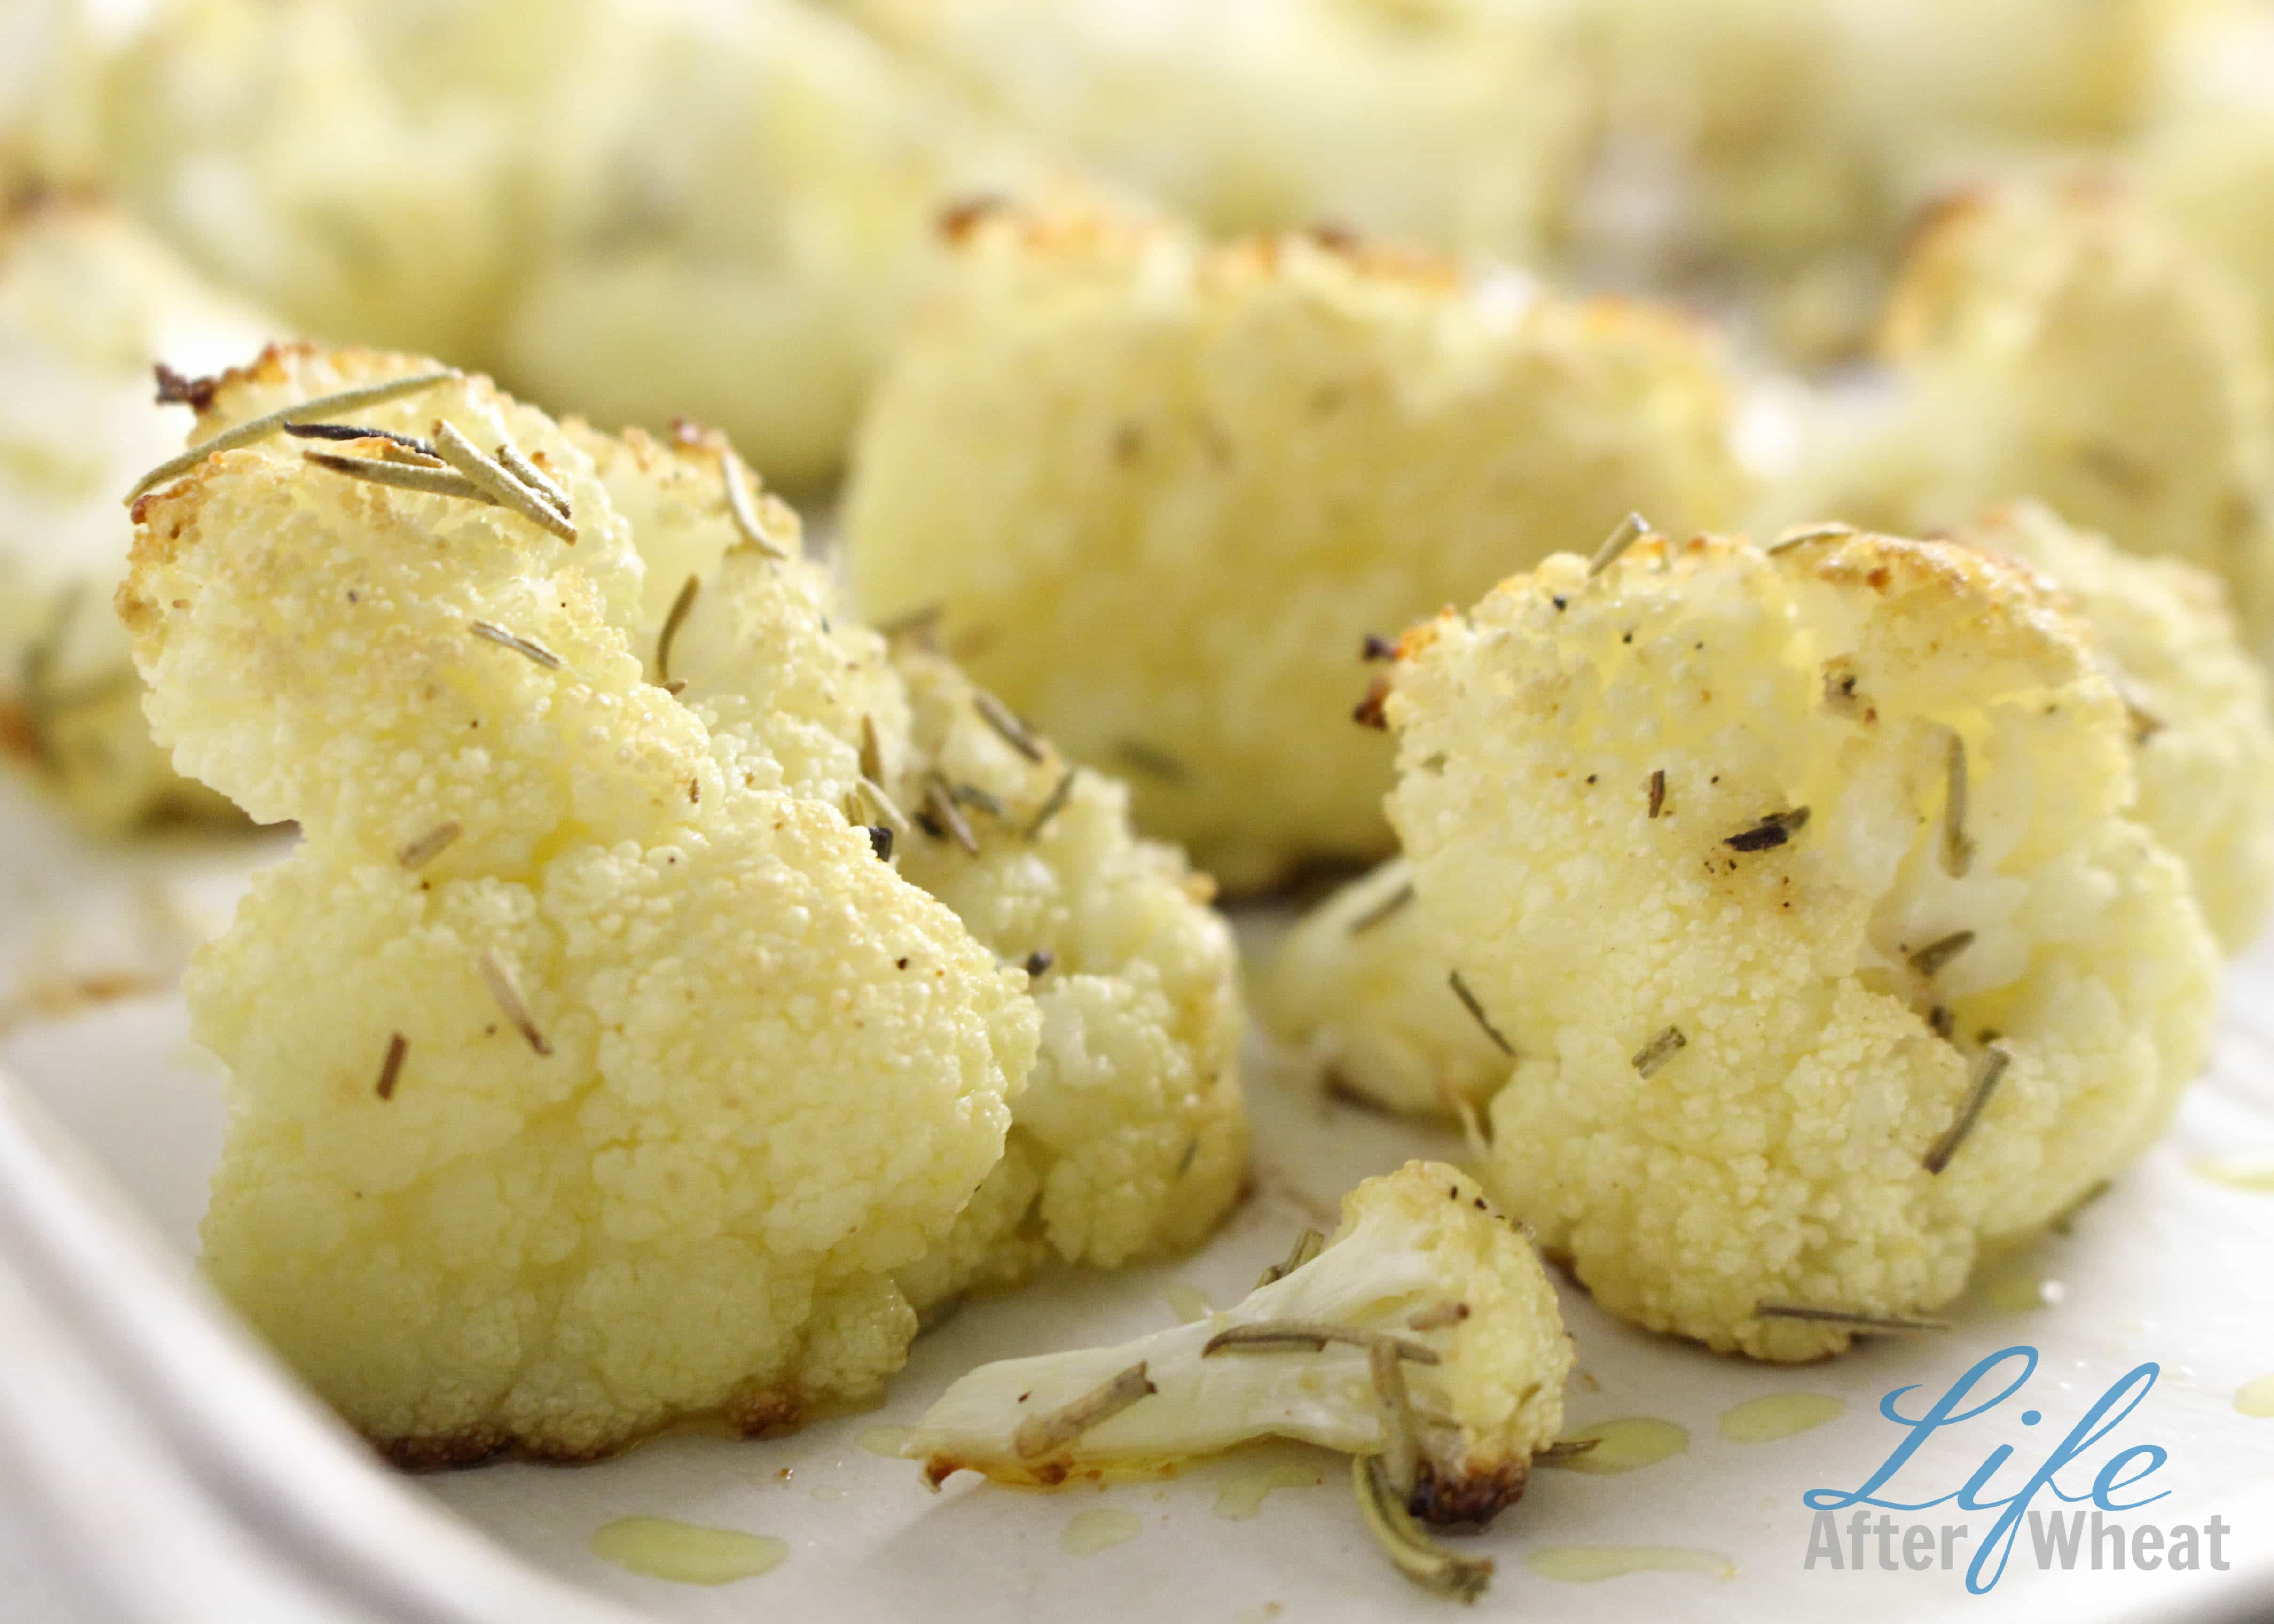 Oven Roasted Cauliflower with the savory flavors of olive oil, rosemary, and sea salt is naturally gluten free, top 8 free, and irresistible even to the pickiest of eaters!